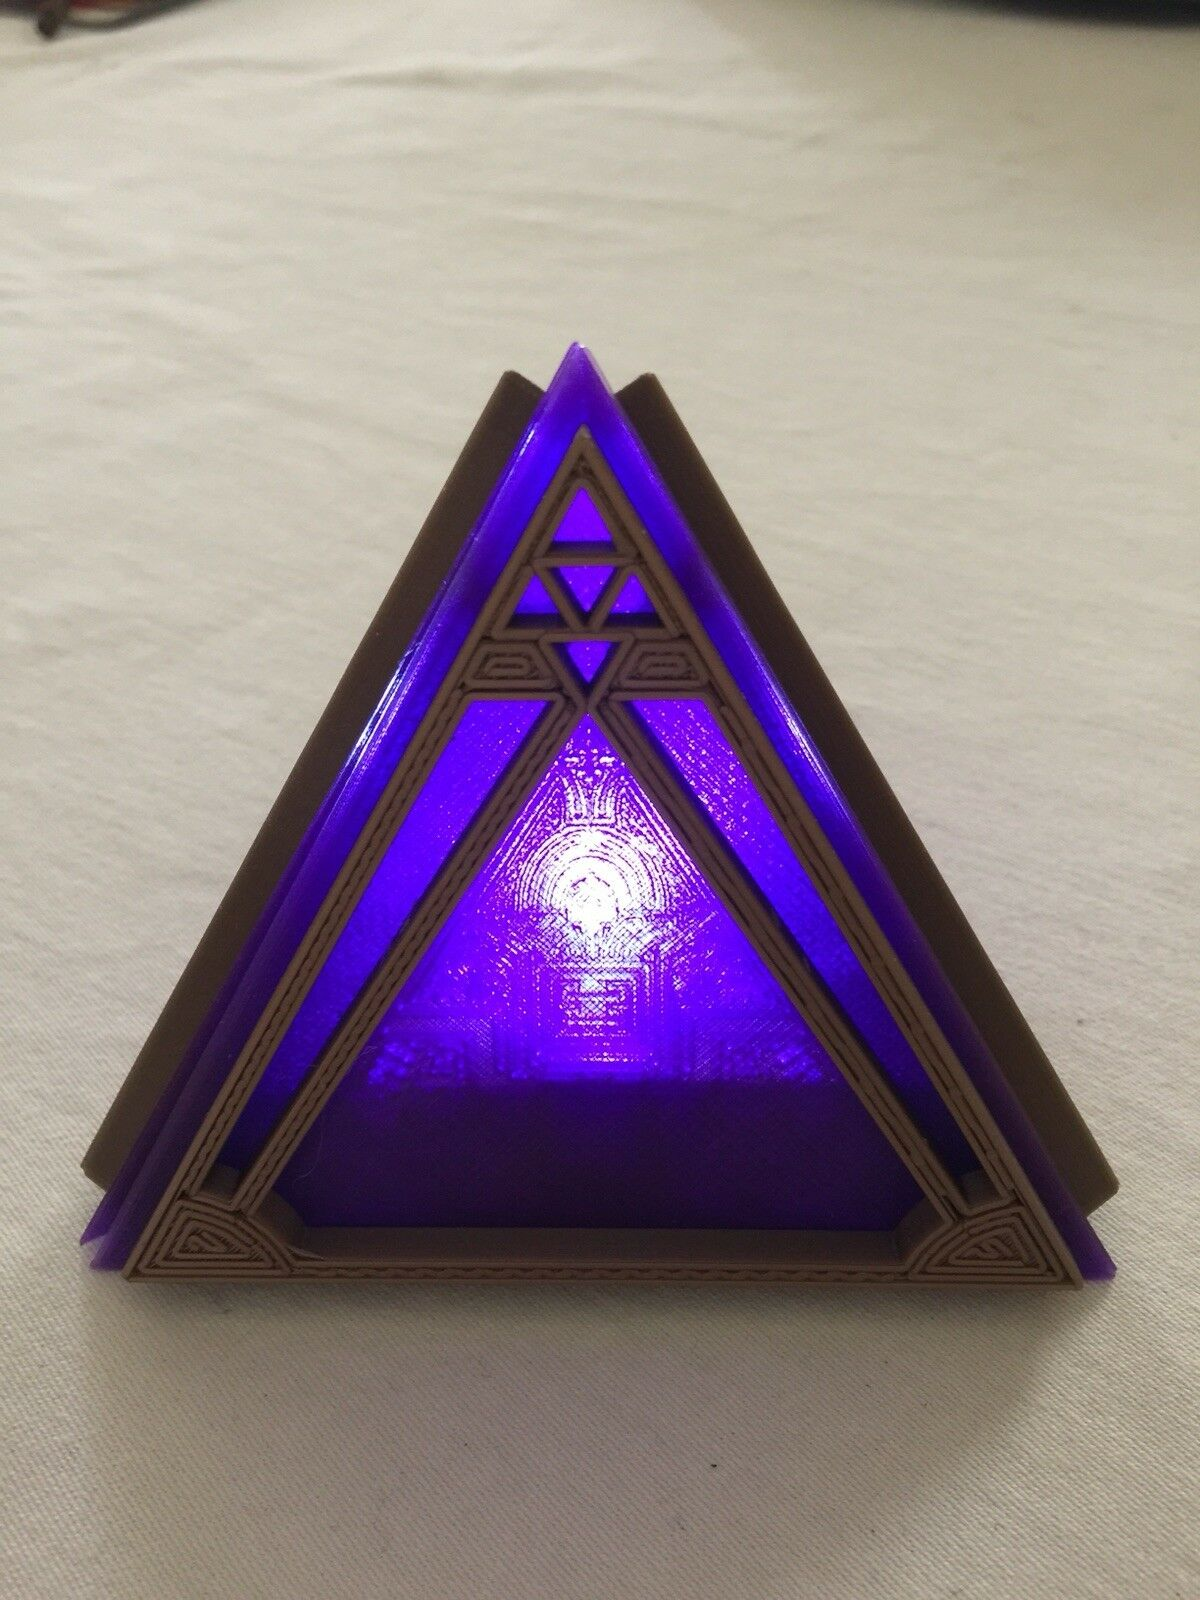 Replica Star Wars Sith Holocron 3D Printed. LIGHTS UP!!